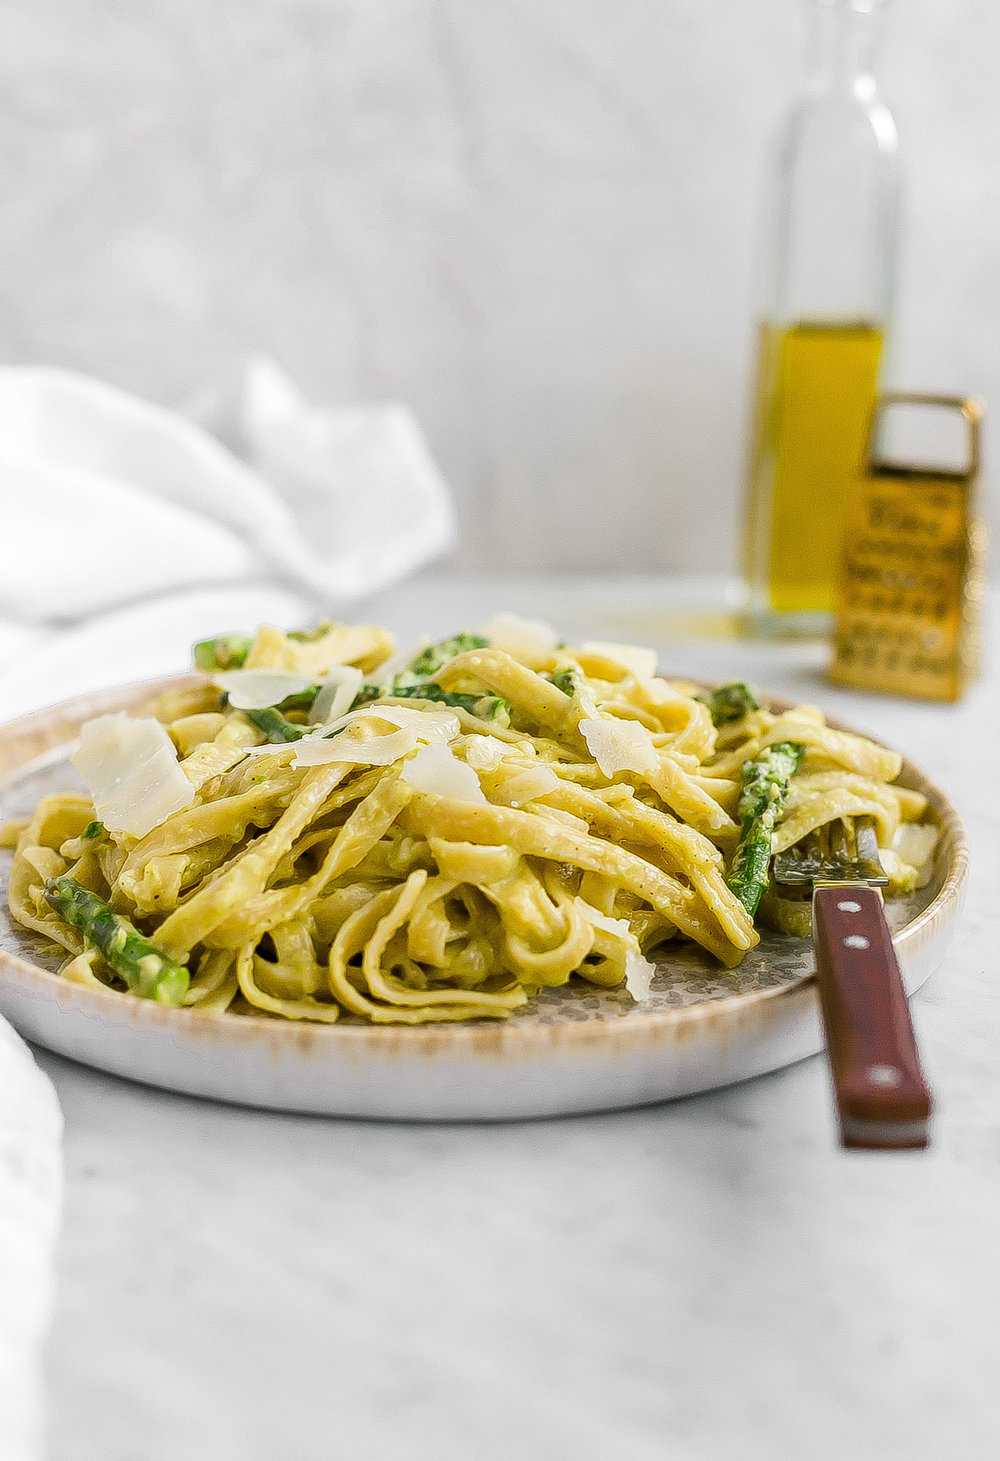 Asparagus Cream Sauce Pasta: pasta made with a creamy, rich, and flavorful cream of asparagus sauce. So unique and delicious! | TrufflesandTrends.com